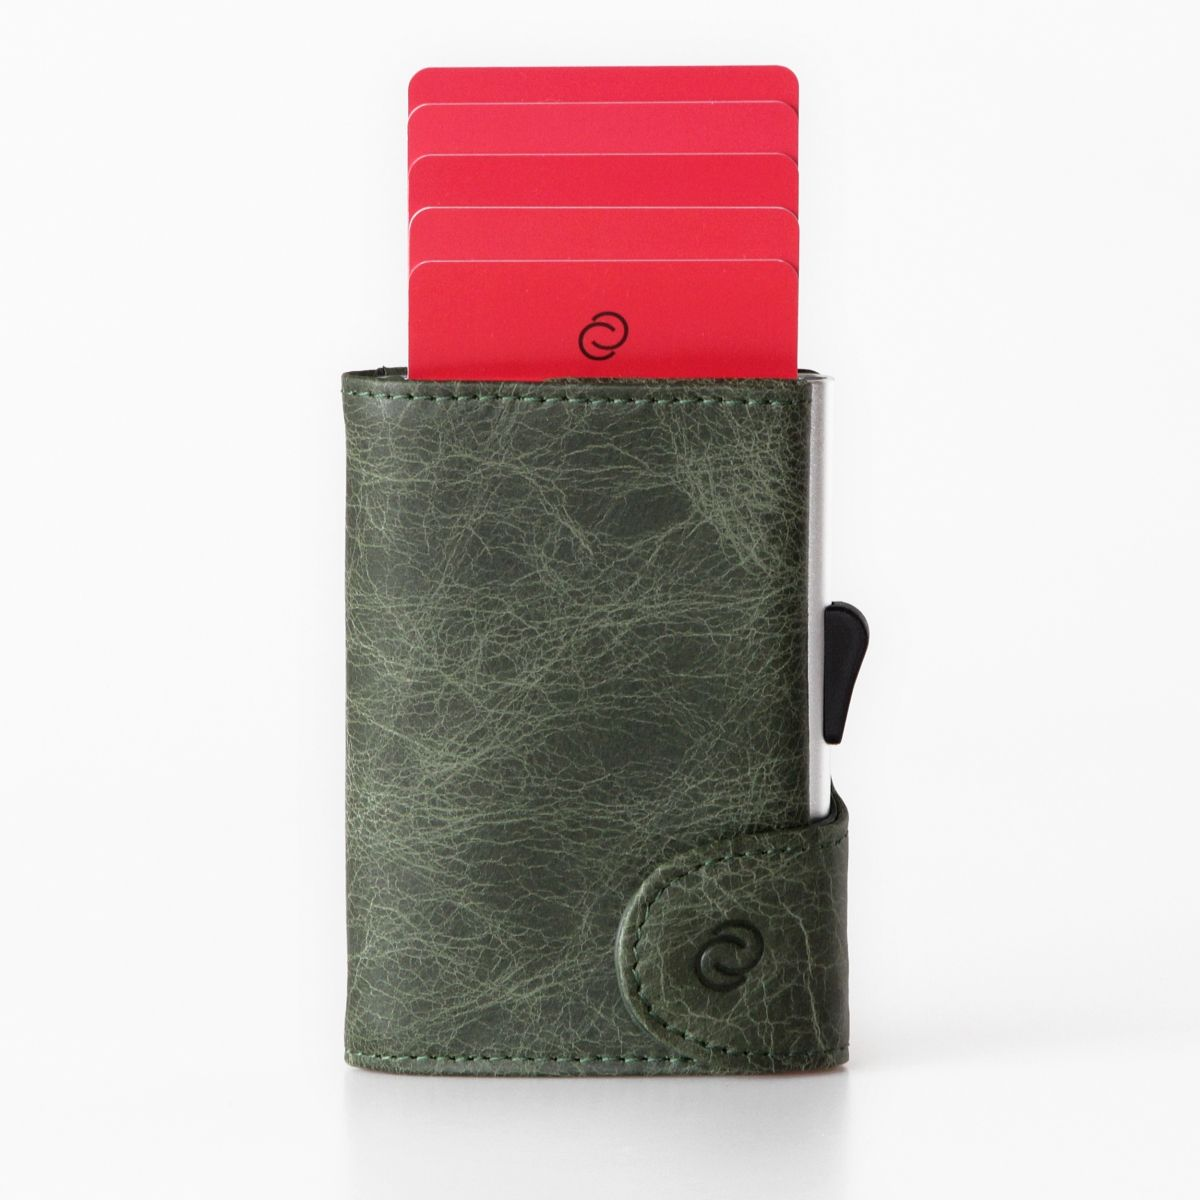 C-Secure Aluminum Card Holder with Genuine Leather and Coin Pouch - Green